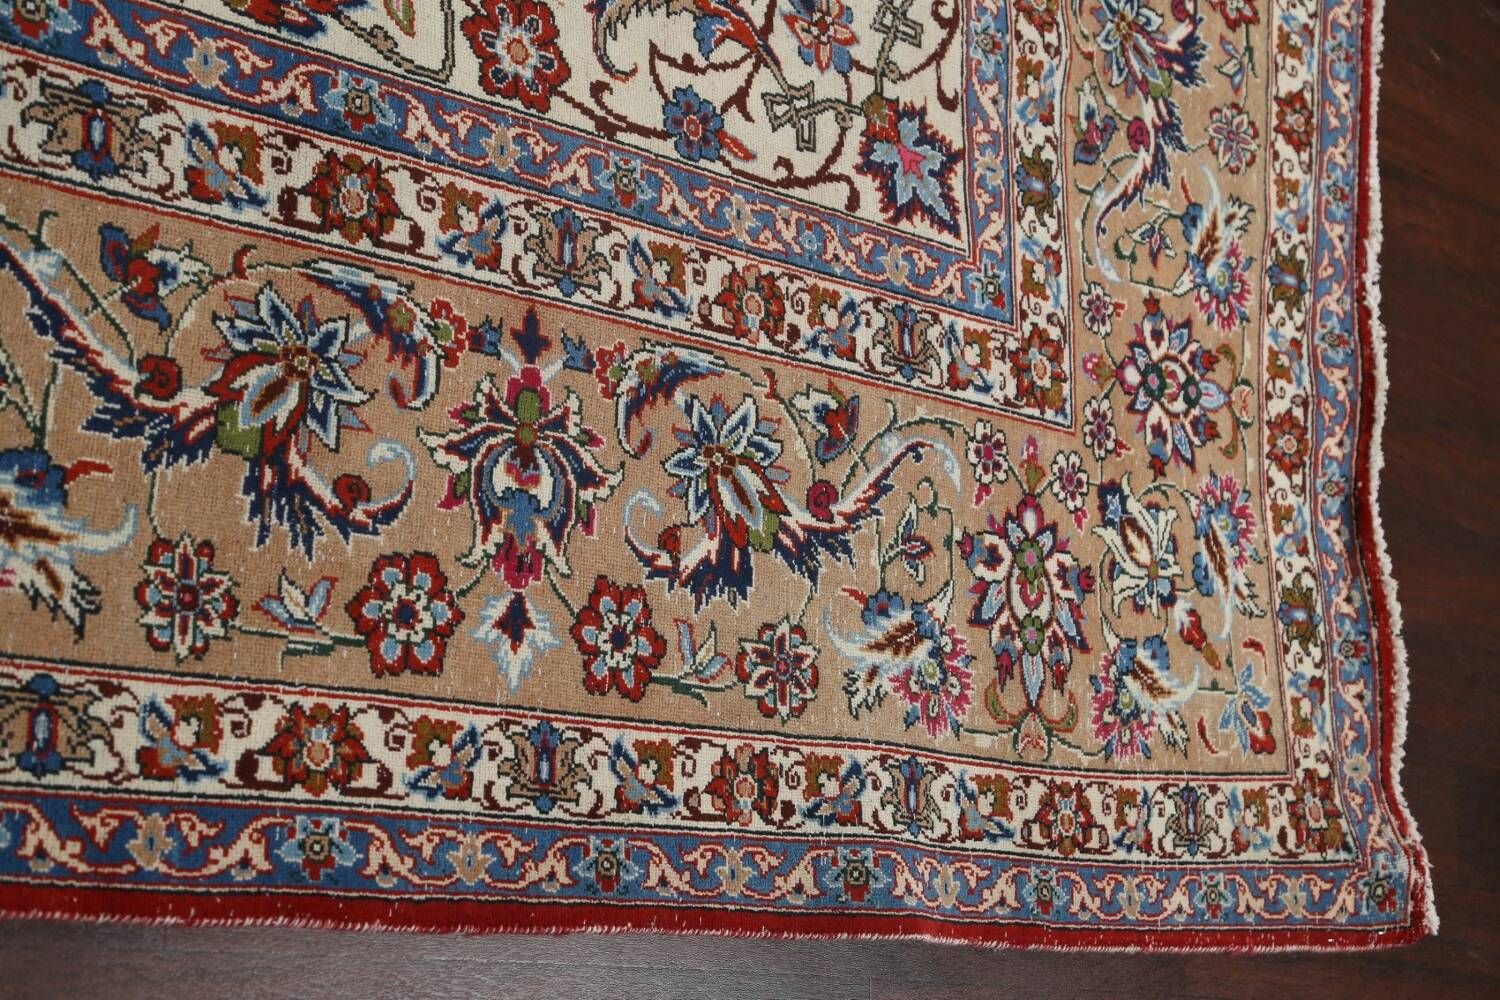 Antique Wool Oversized Isfahan Persian Rug 10x17 image 12